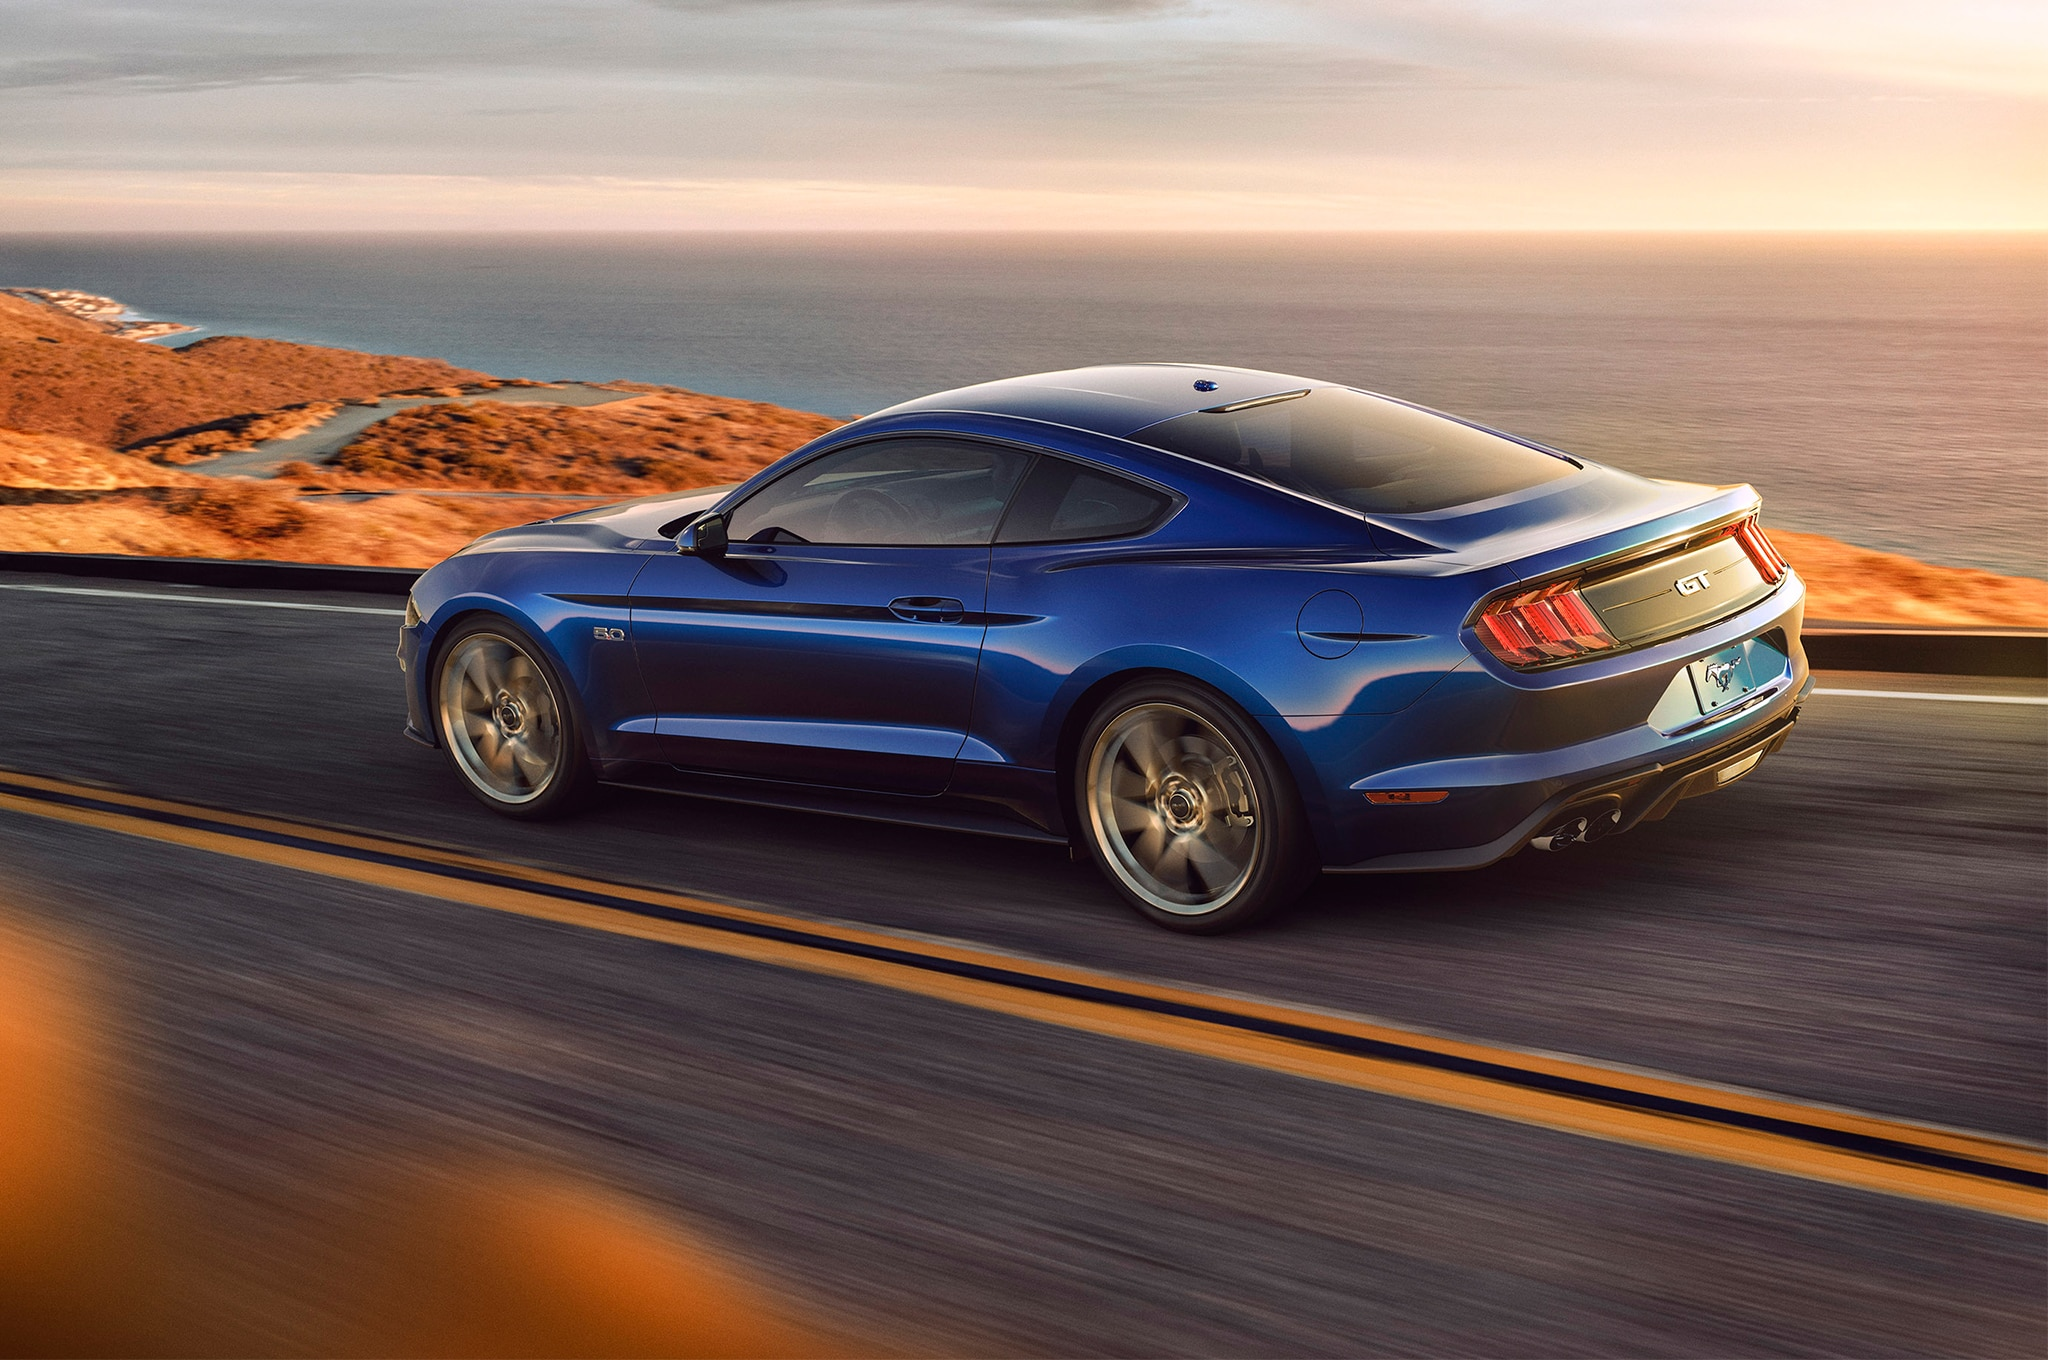 Ford Mustang GT's 'Quiet Start' Let's it Roar Without Waking the Neighbors